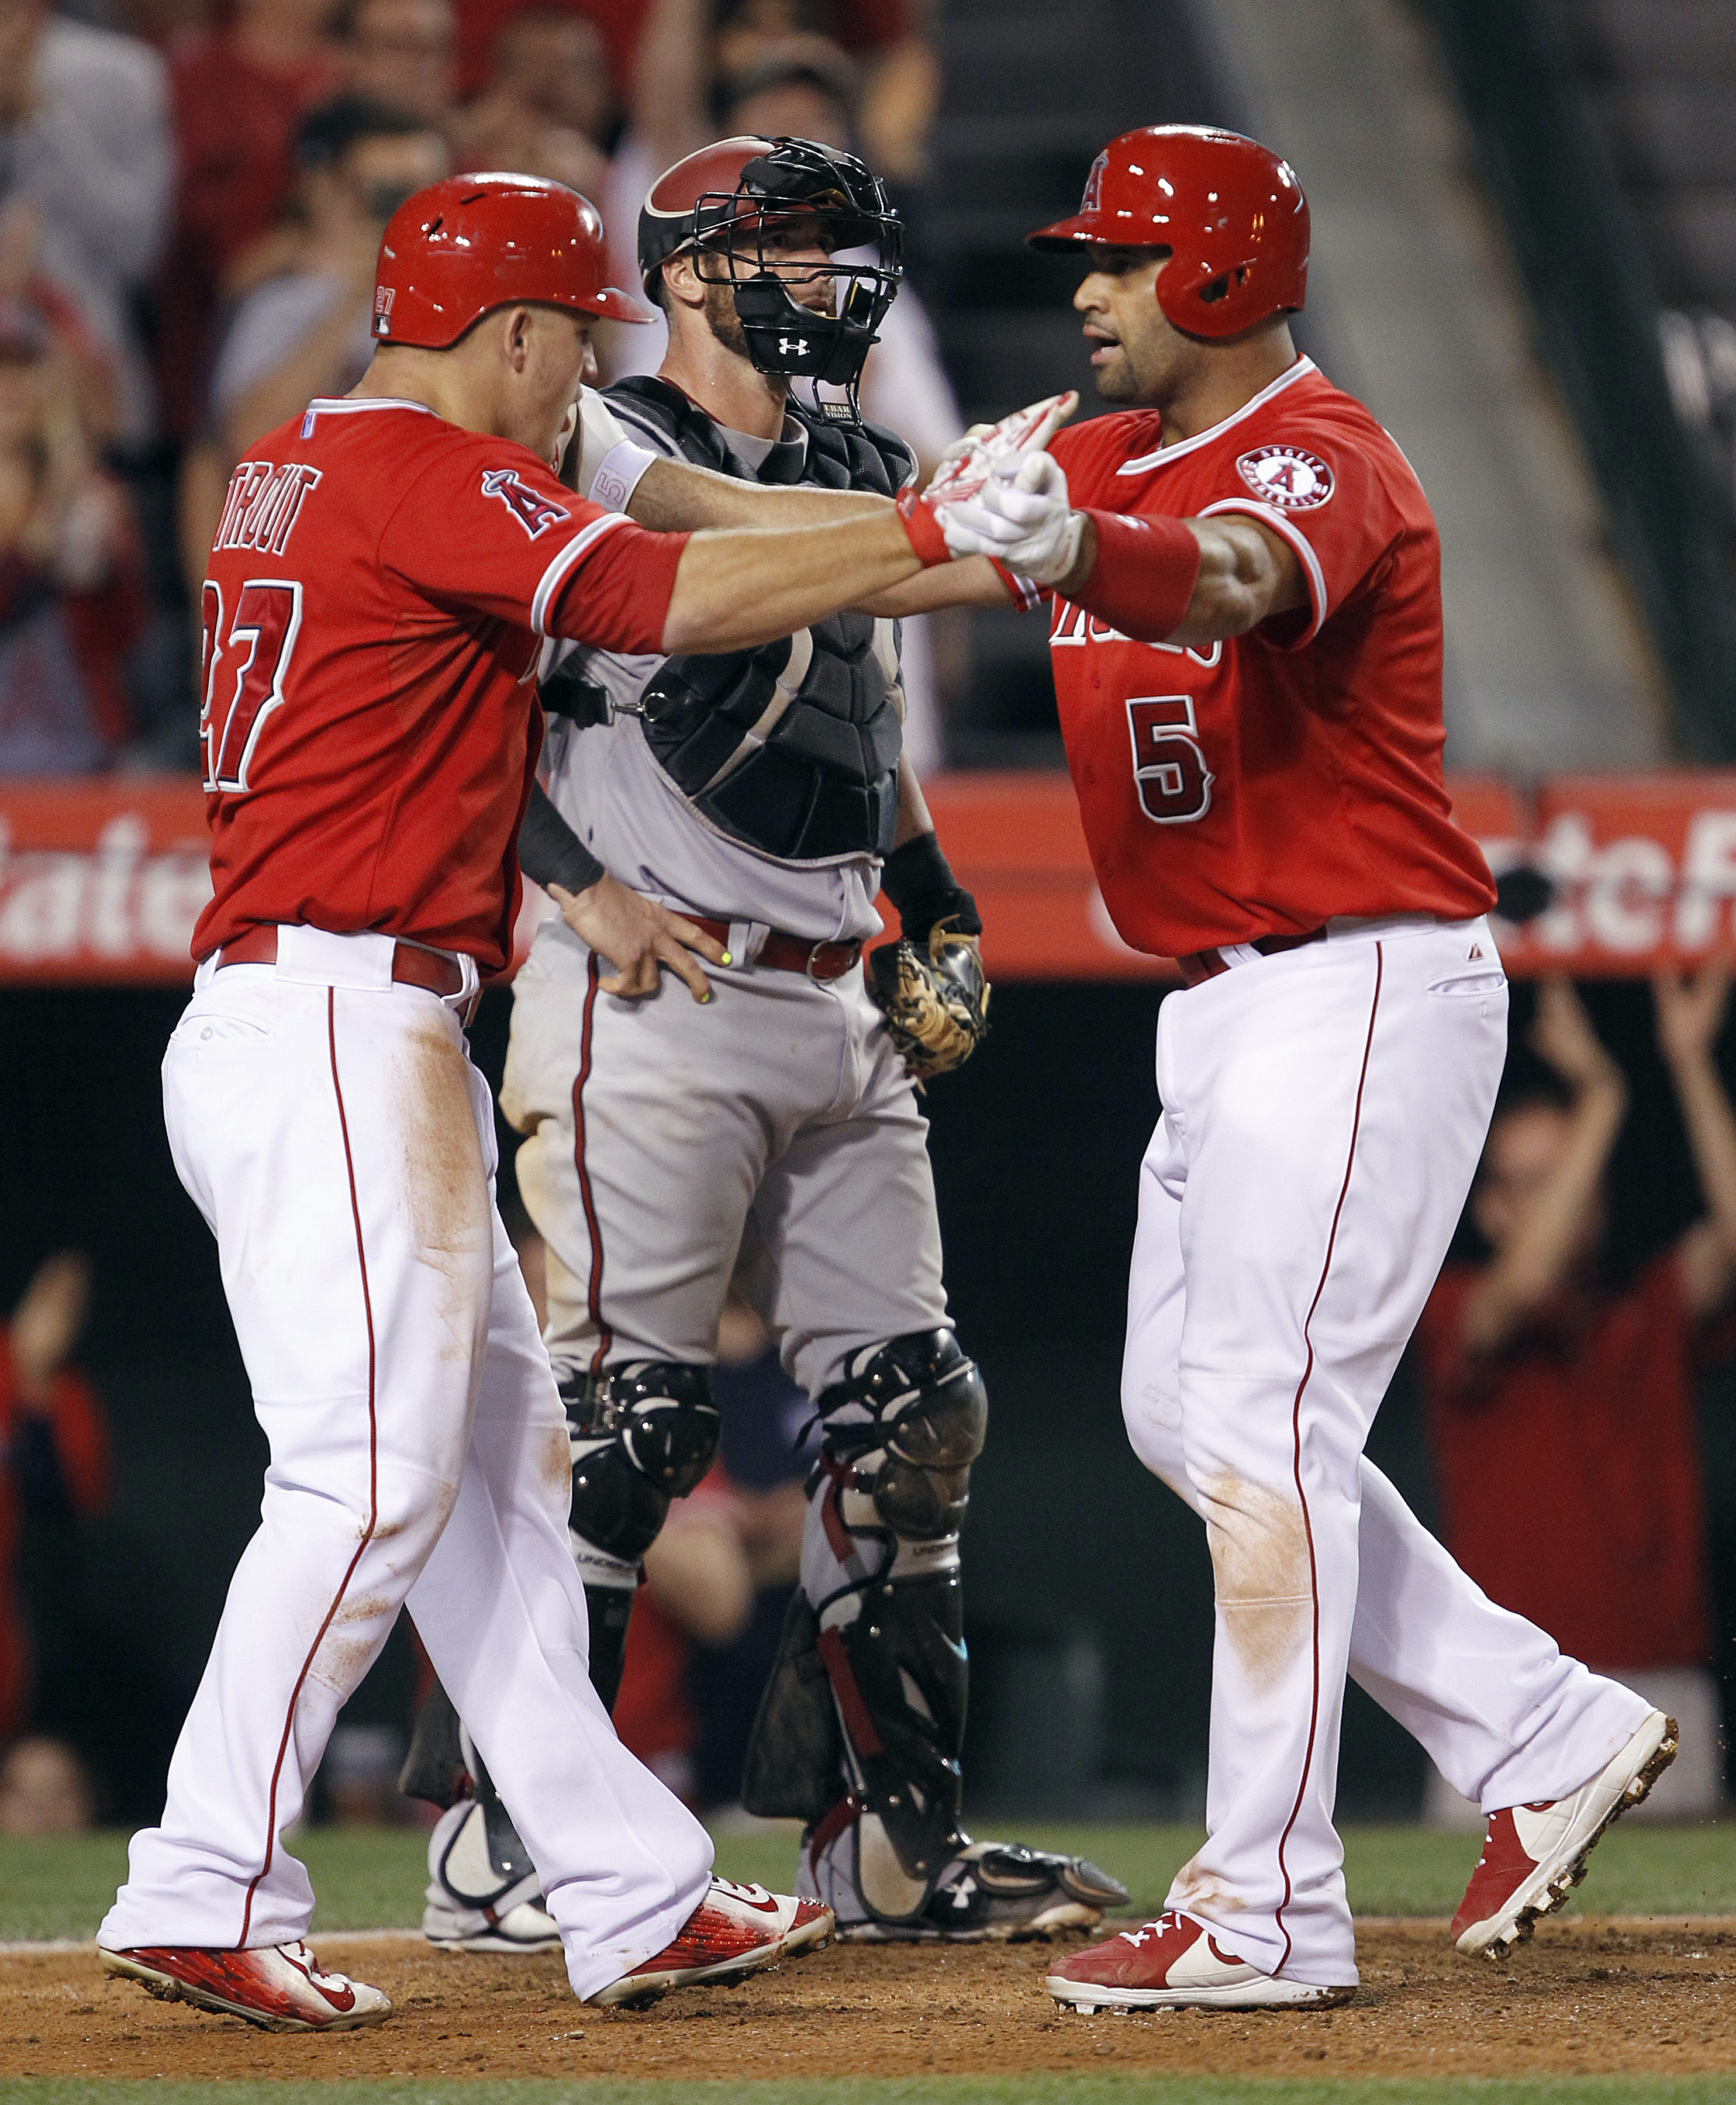 Los Angeles Angels' Mike Trout, left, celebrates with Albert Pujols after a two-run home run by Pujols, next to Arizona Diamondbacks catcher Jarrod Saltalamacchia during the sixth inning of a baseball game in Anaheim, Calif., Tuesday, June 16, 2015. (AP P